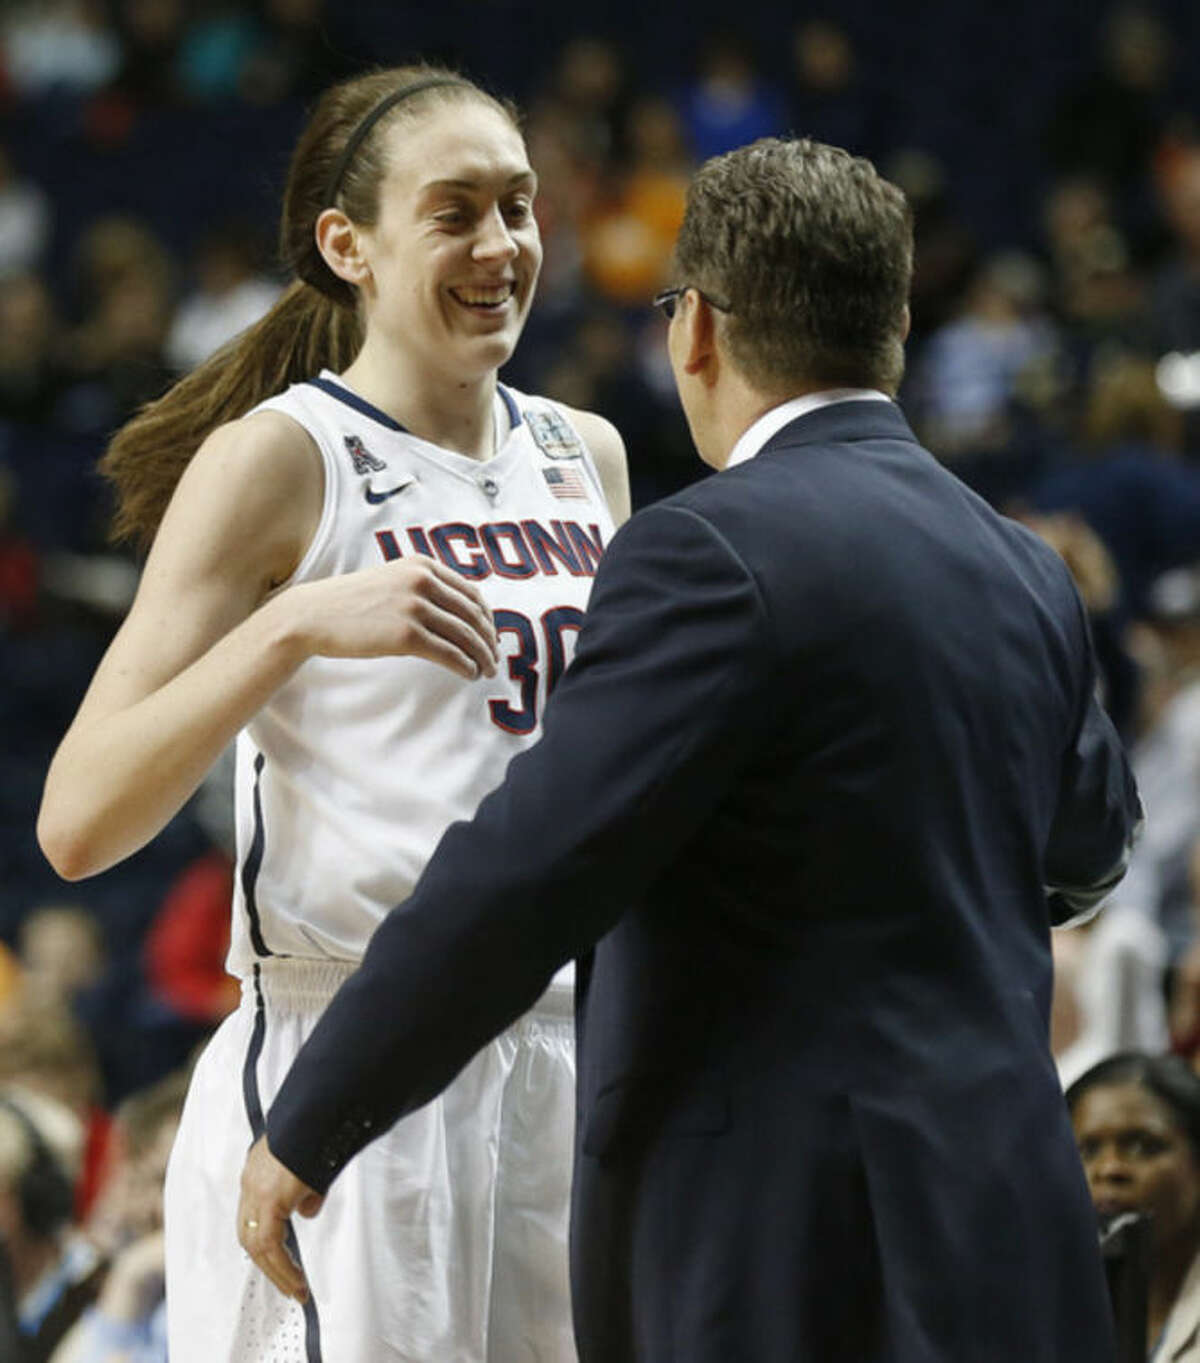 Connecticut forward Breanna Stewart (30) prepares to hug Connecticut head coach Geno Auriemma after the second half of the semifinal game in the Final Four of the NCAA women's college basketball tournament, Sunday, April 6, 2014, in Nashville, Tenn. Connecticut won 75-56. (AP Photo/John Bazemore)